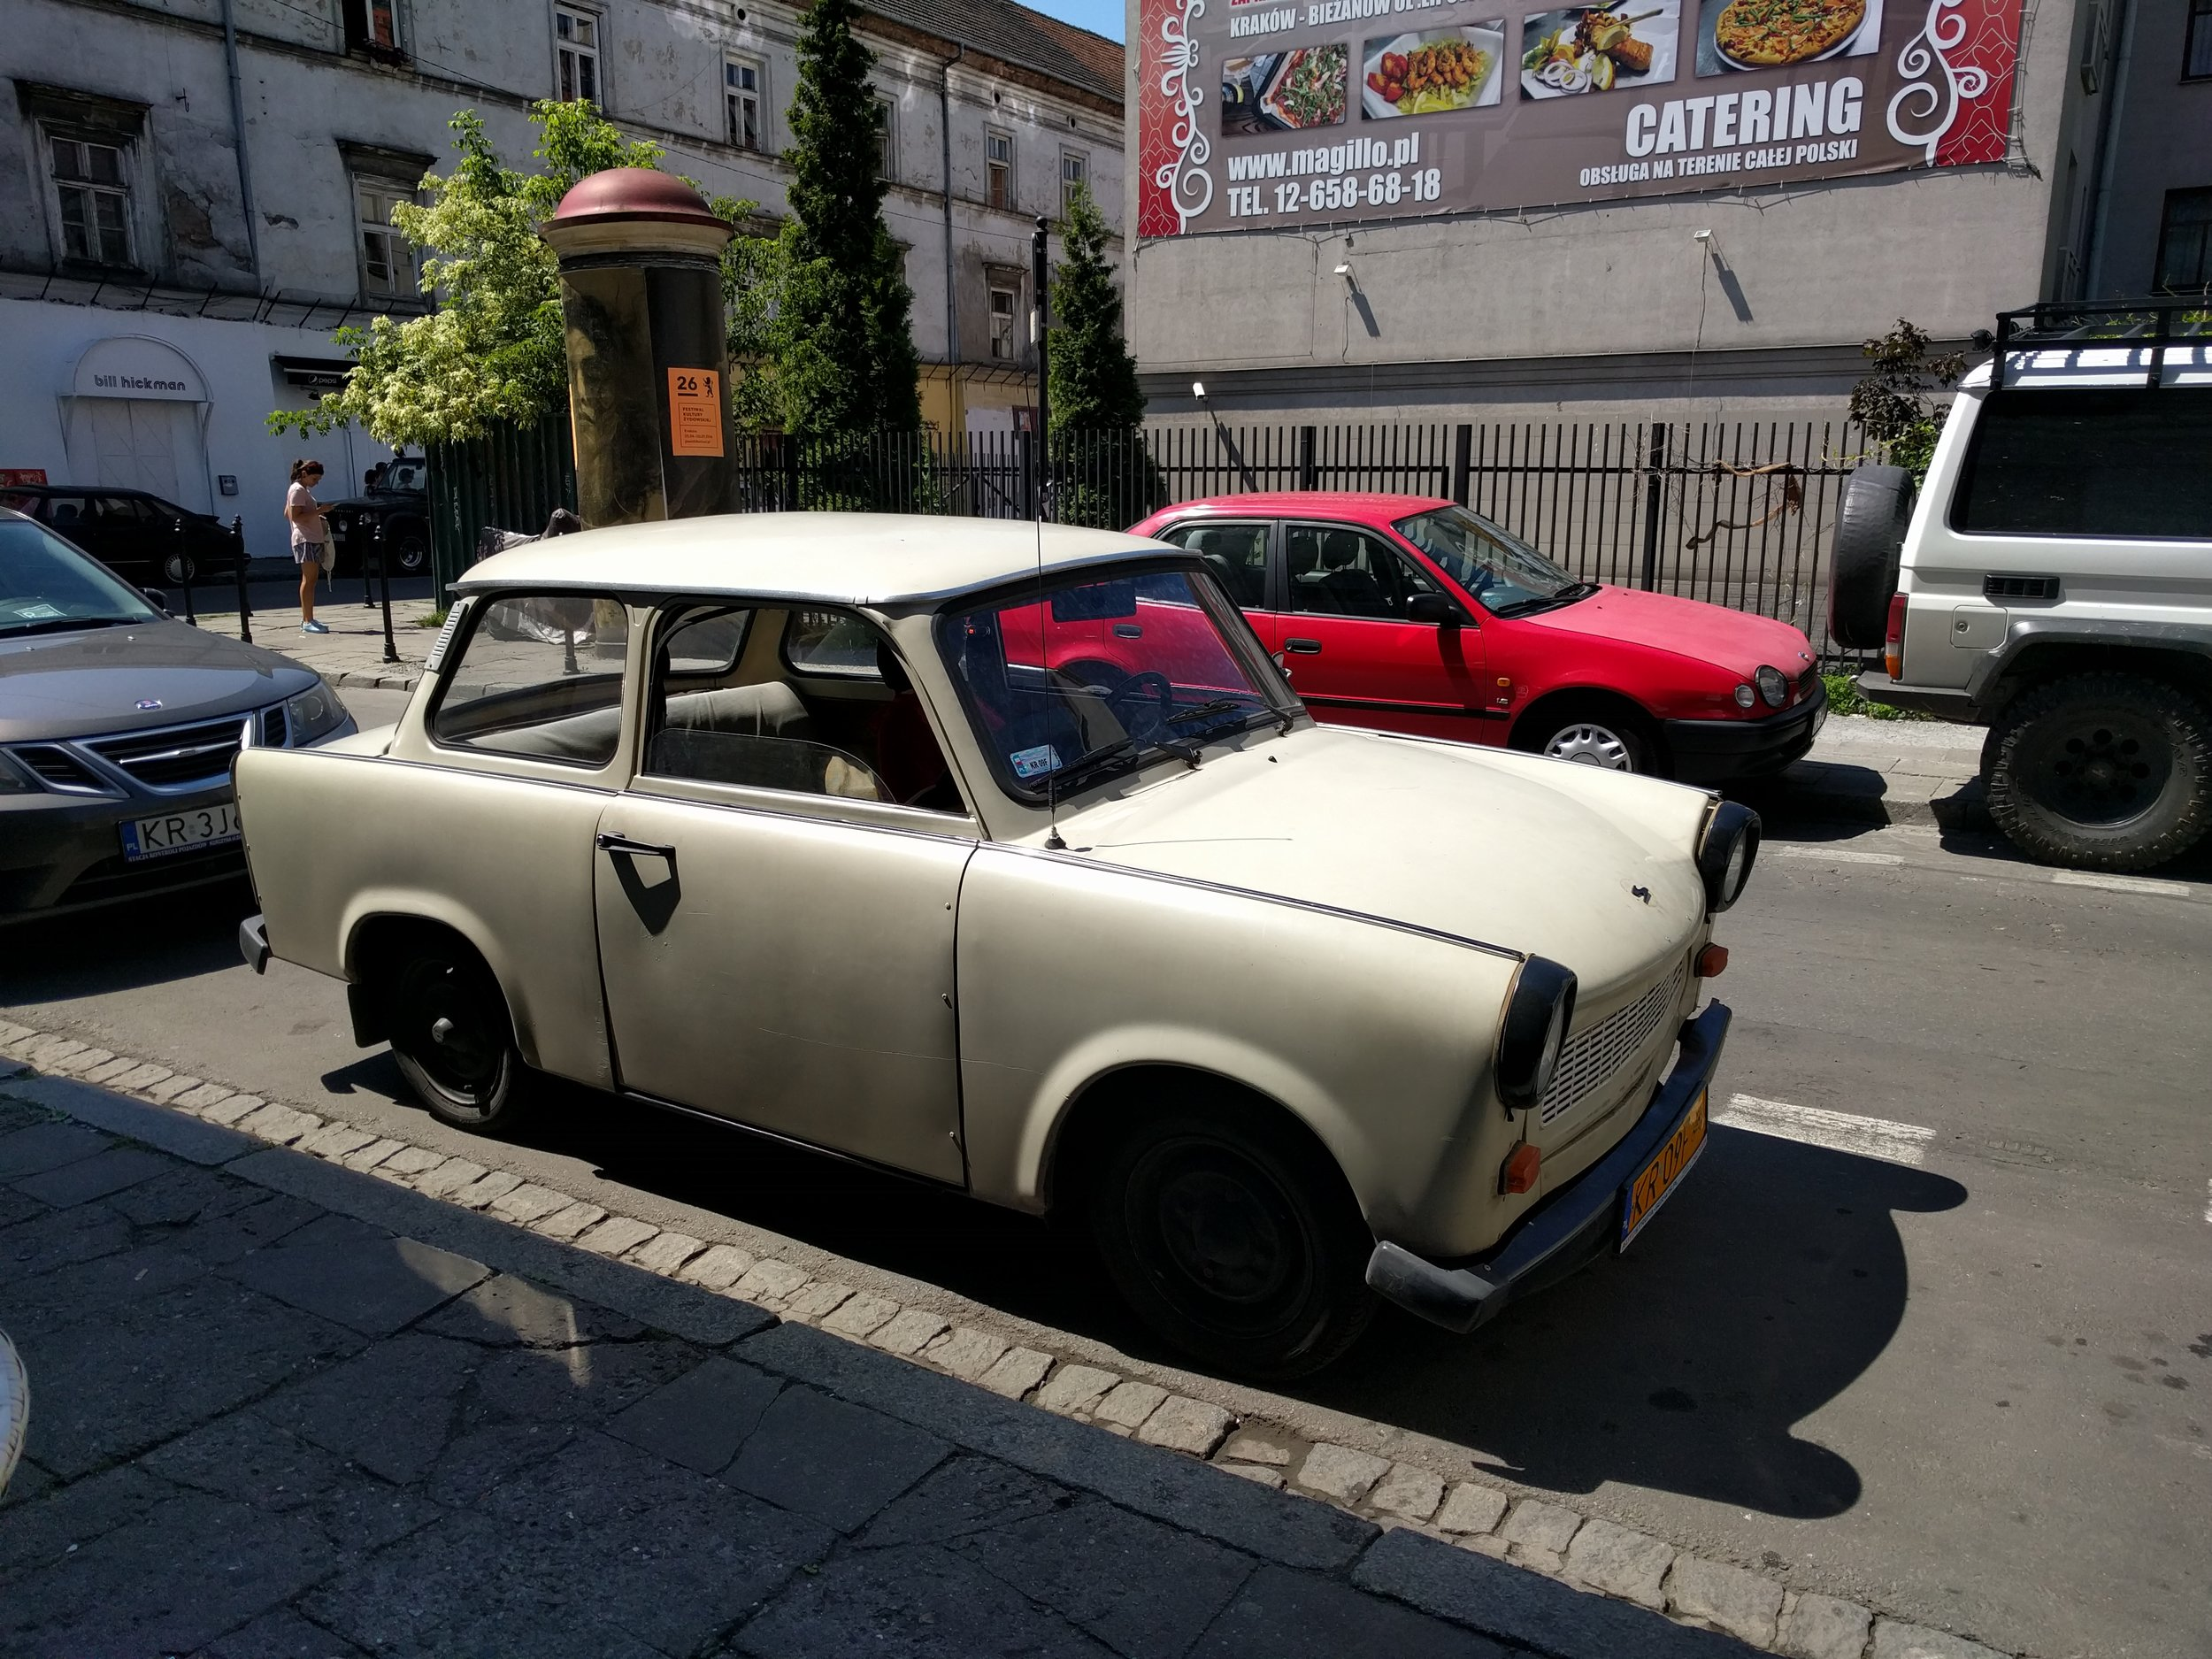 A Trabant in Krakow. The car of the German Democratic Republic (East Germany). Fun fact, it only came with a two-stroke engine.